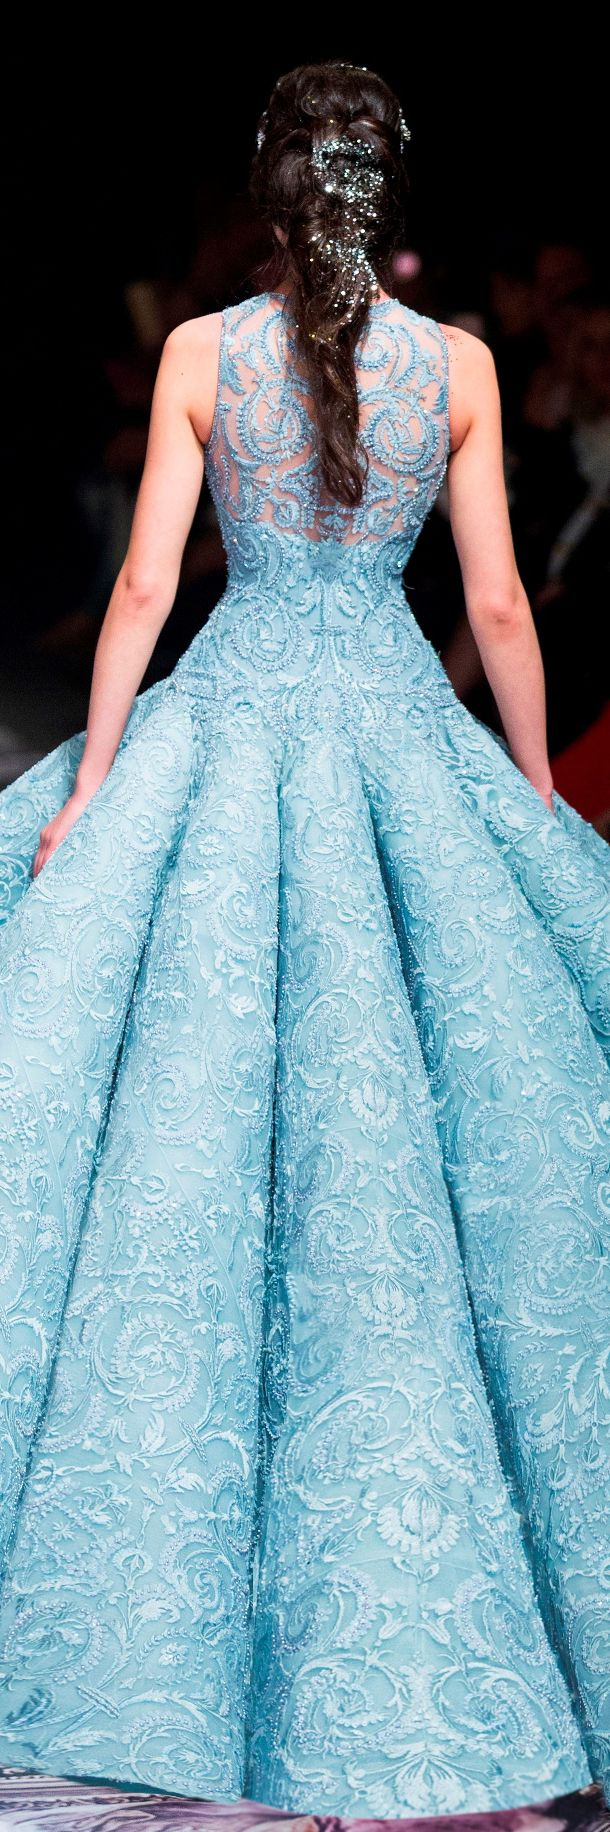 233 best Michael Cinco images on Pinterest | High fashion, Couture ...